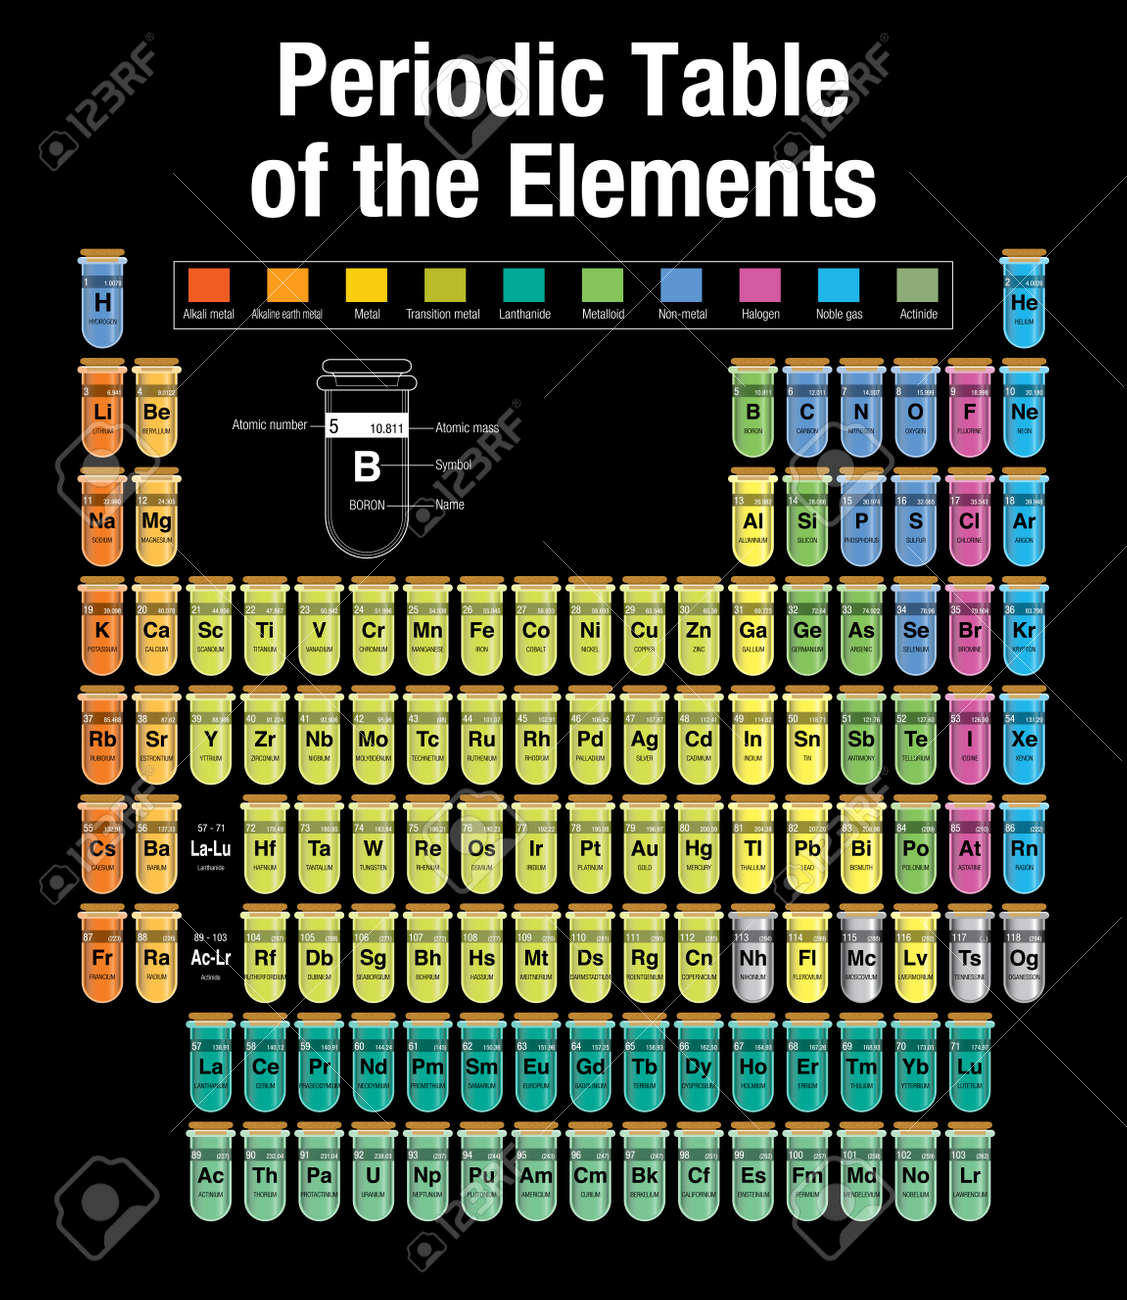 Periodic table of the elements consisting of test tubes with periodic table of the elements consisting of test tubes with the names and number of each urtaz Gallery